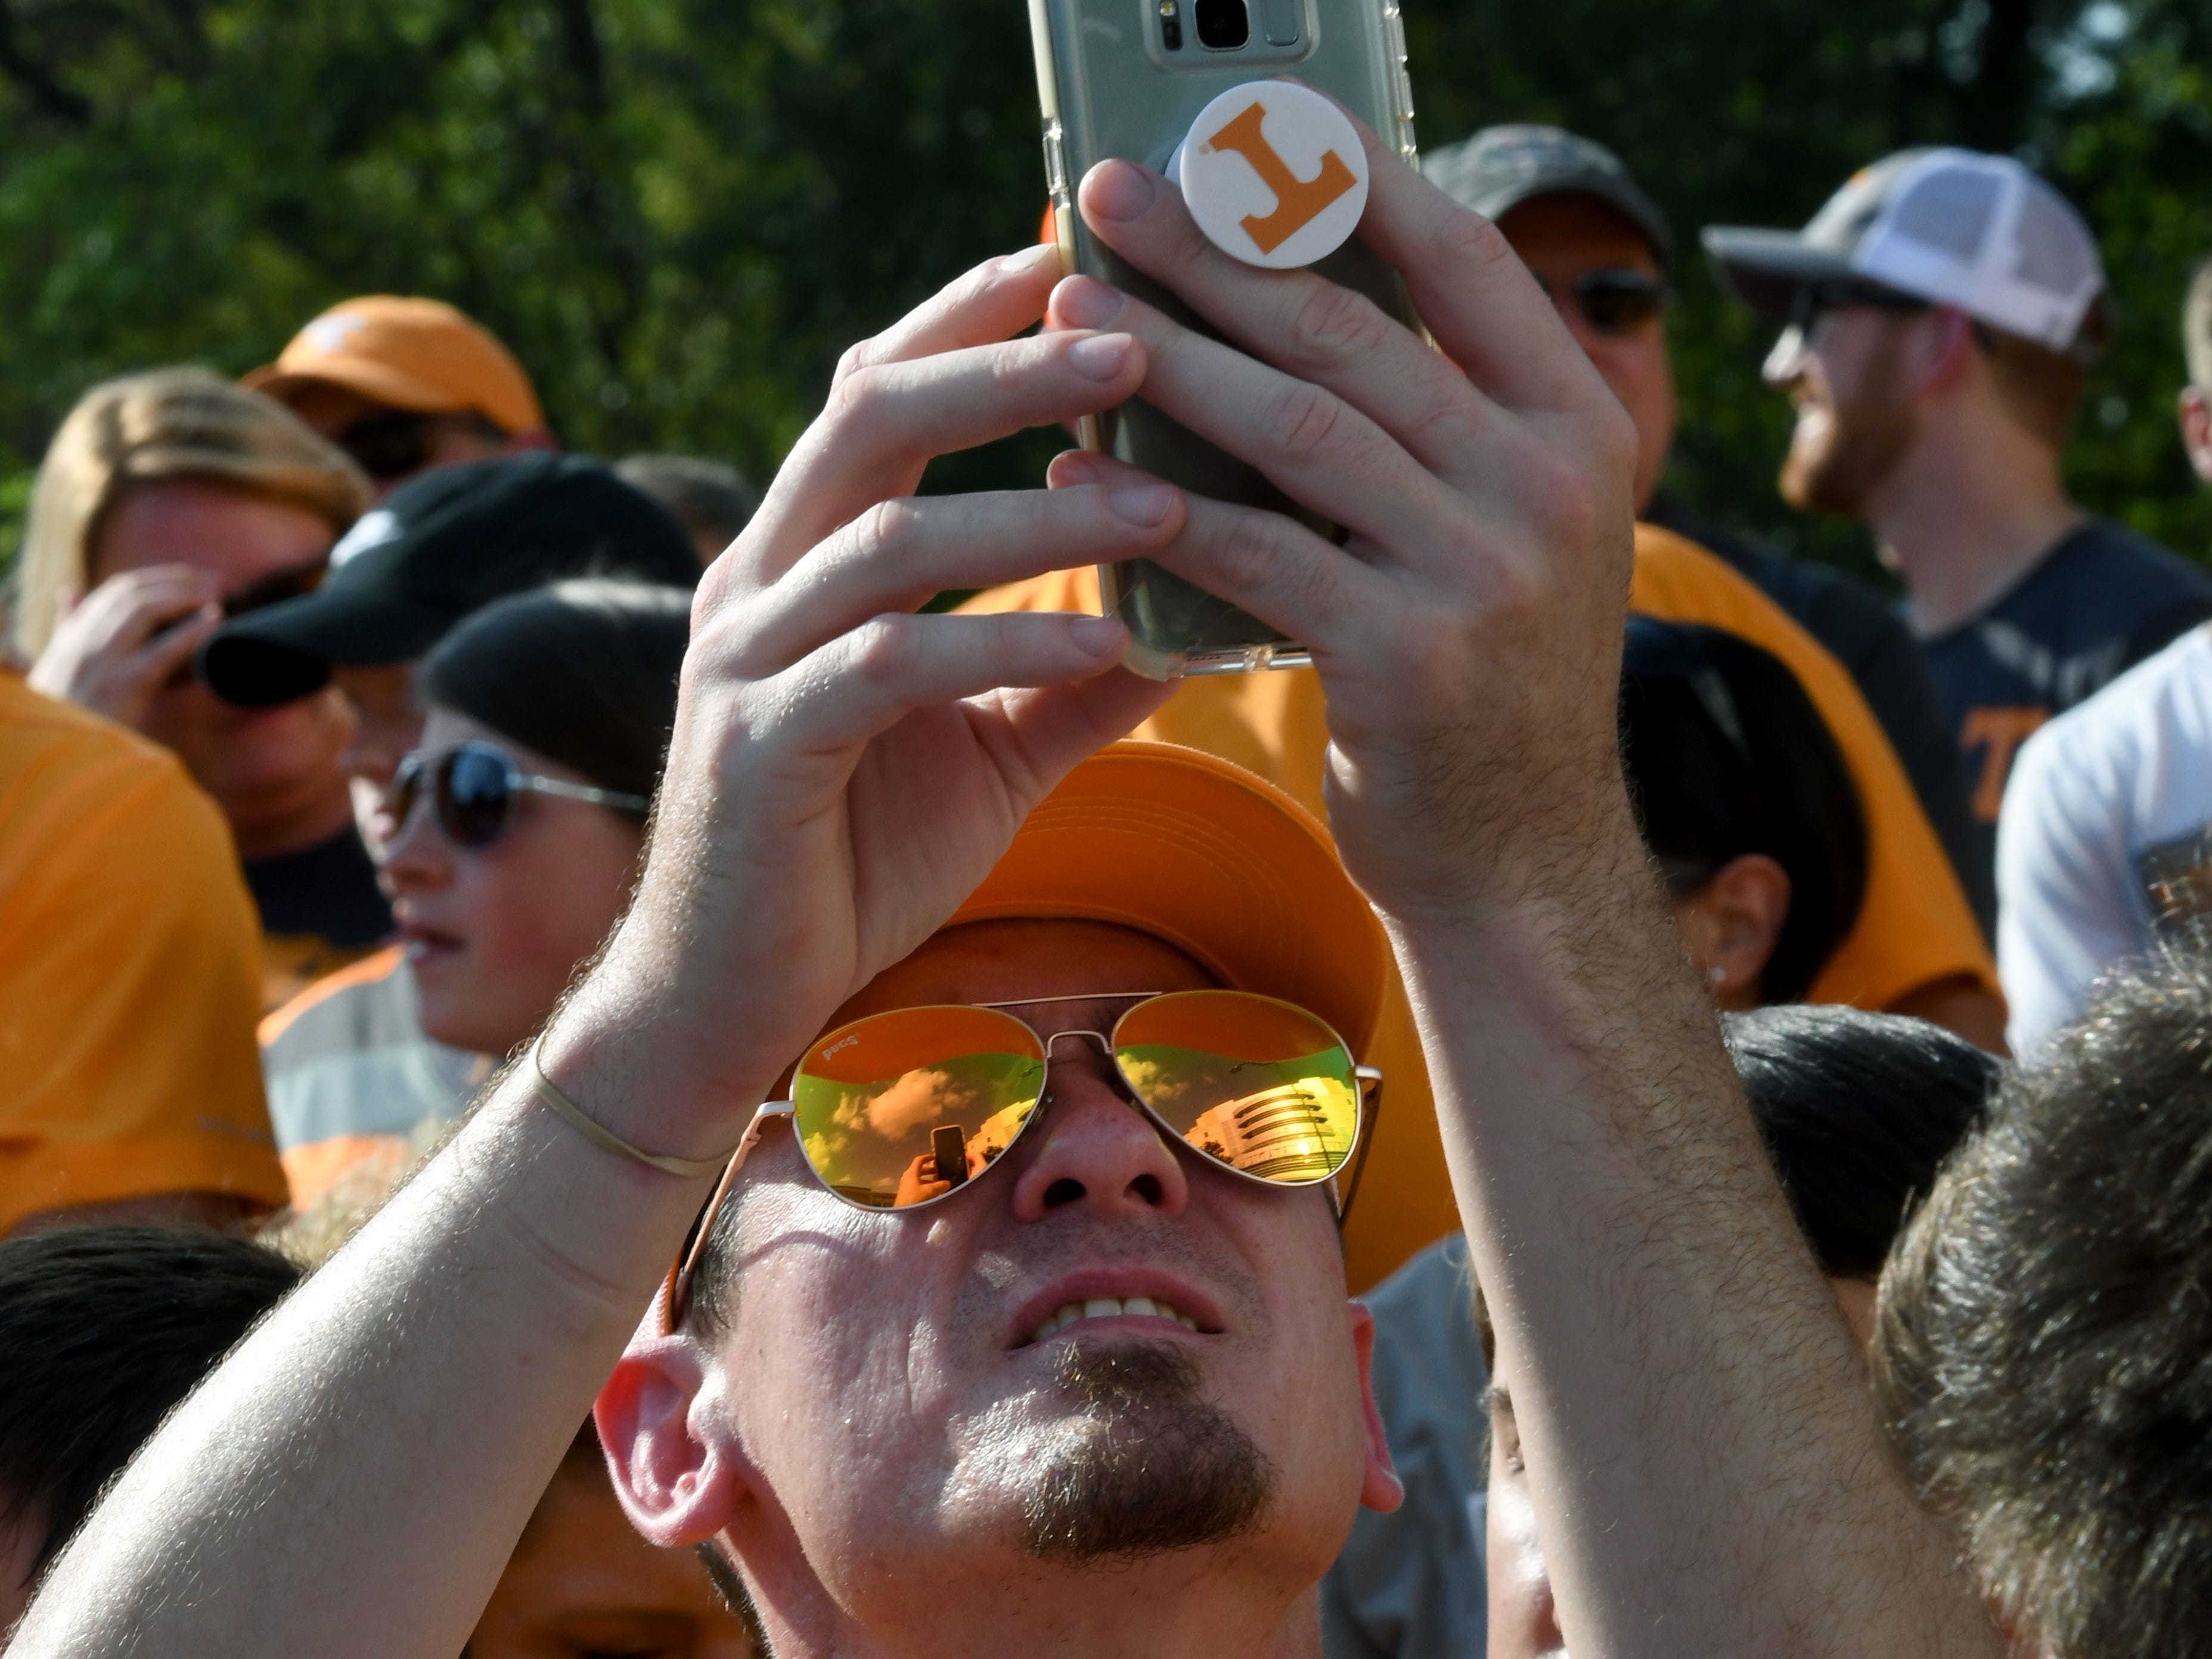 Tennessee fans during the Vol Walk before the game against Florida in Neyland Stadium Saturday, September 22, 2018 in Knoxville, Tenn.